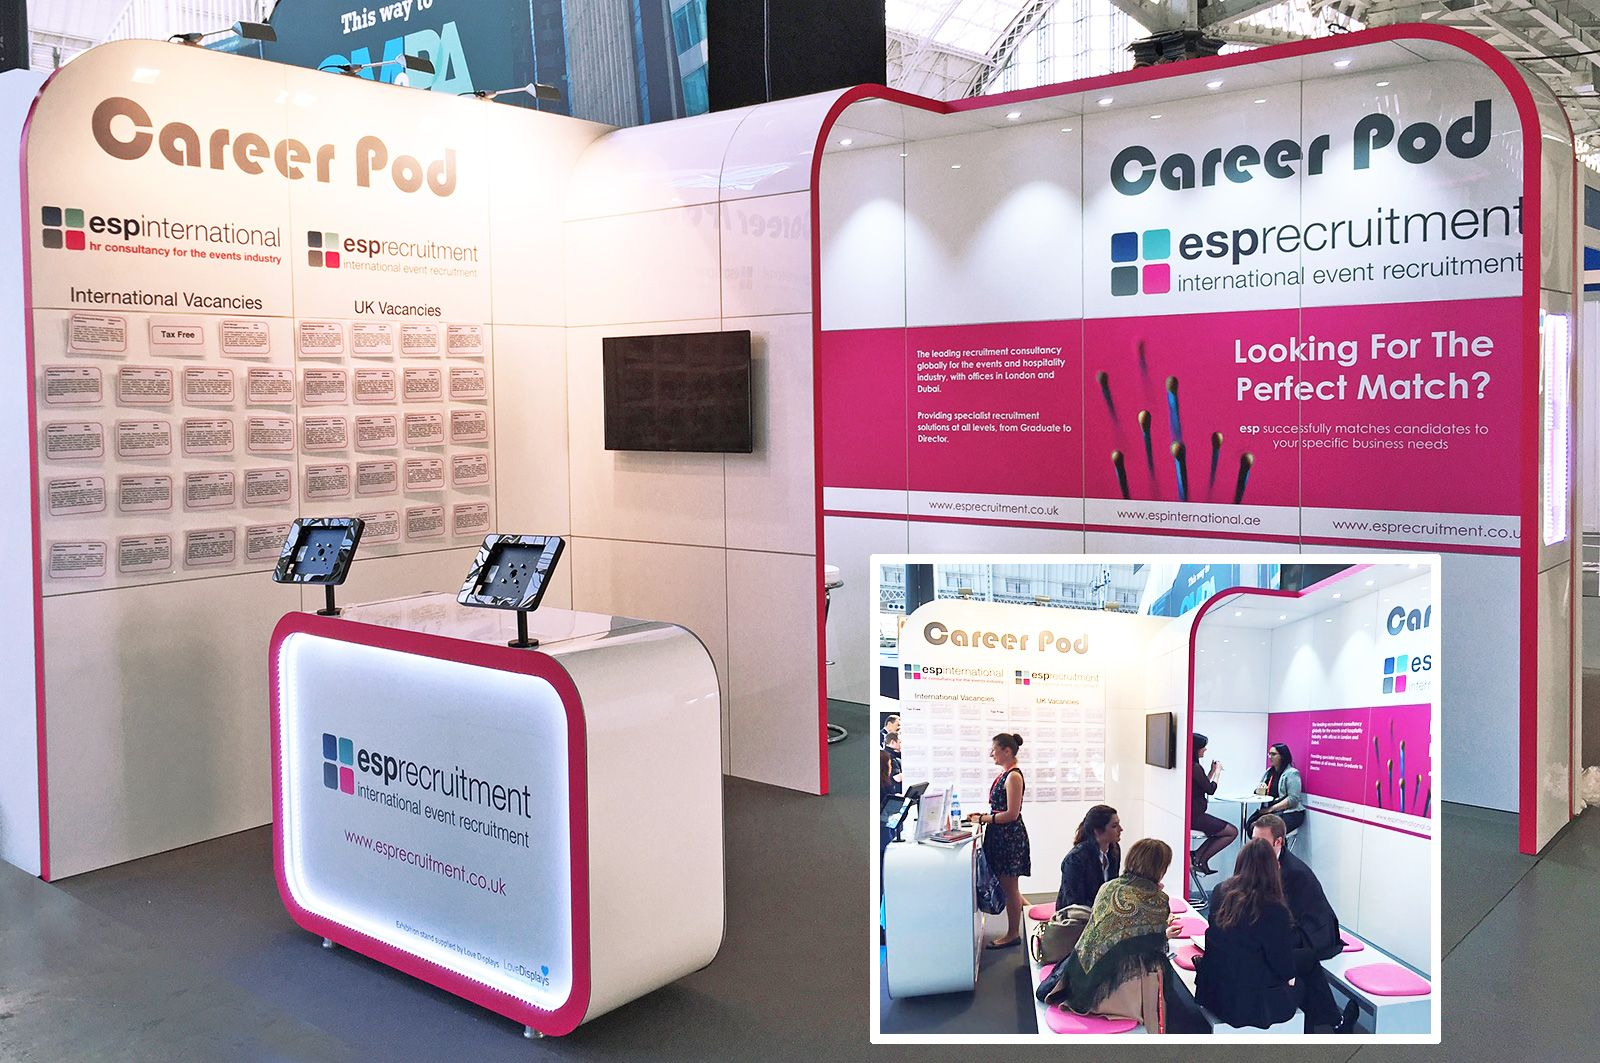 4m x 4m Exhibition Stand designed and installed by Love Expo, UK #exhibit #design #build #install #standbuild #customstand